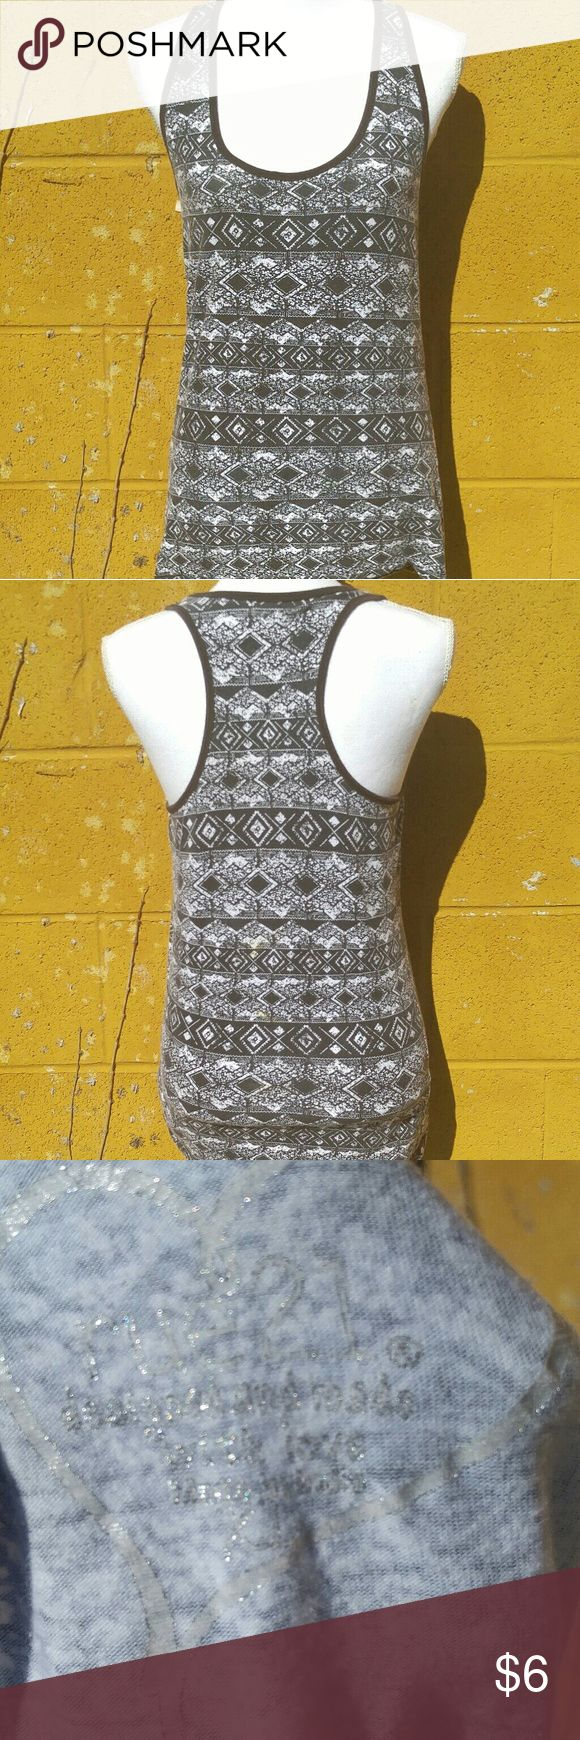 """Rue 21 racer back BRAND: Rue 21  SIZE: X-Large  FLAW: None  COLOR: Black, white and grey  DESCRIPTION: Black white and gray tribal print racerback/razorback tank top.  The mannequin measurements are:  Shoulders: 15"""" Chest: 34"""" Waist: 26.7"""" Hip: 35.4""""  Use #bishoujo to sort for your size. Please note I do have several pets, but all items will be washed before shipping  #rue21 #rue21tank #rue21shirt #racerback #racerbacktank #razorback #razorbacktank #tribalprint #tribal Rue21 Tops Tank Tops"""